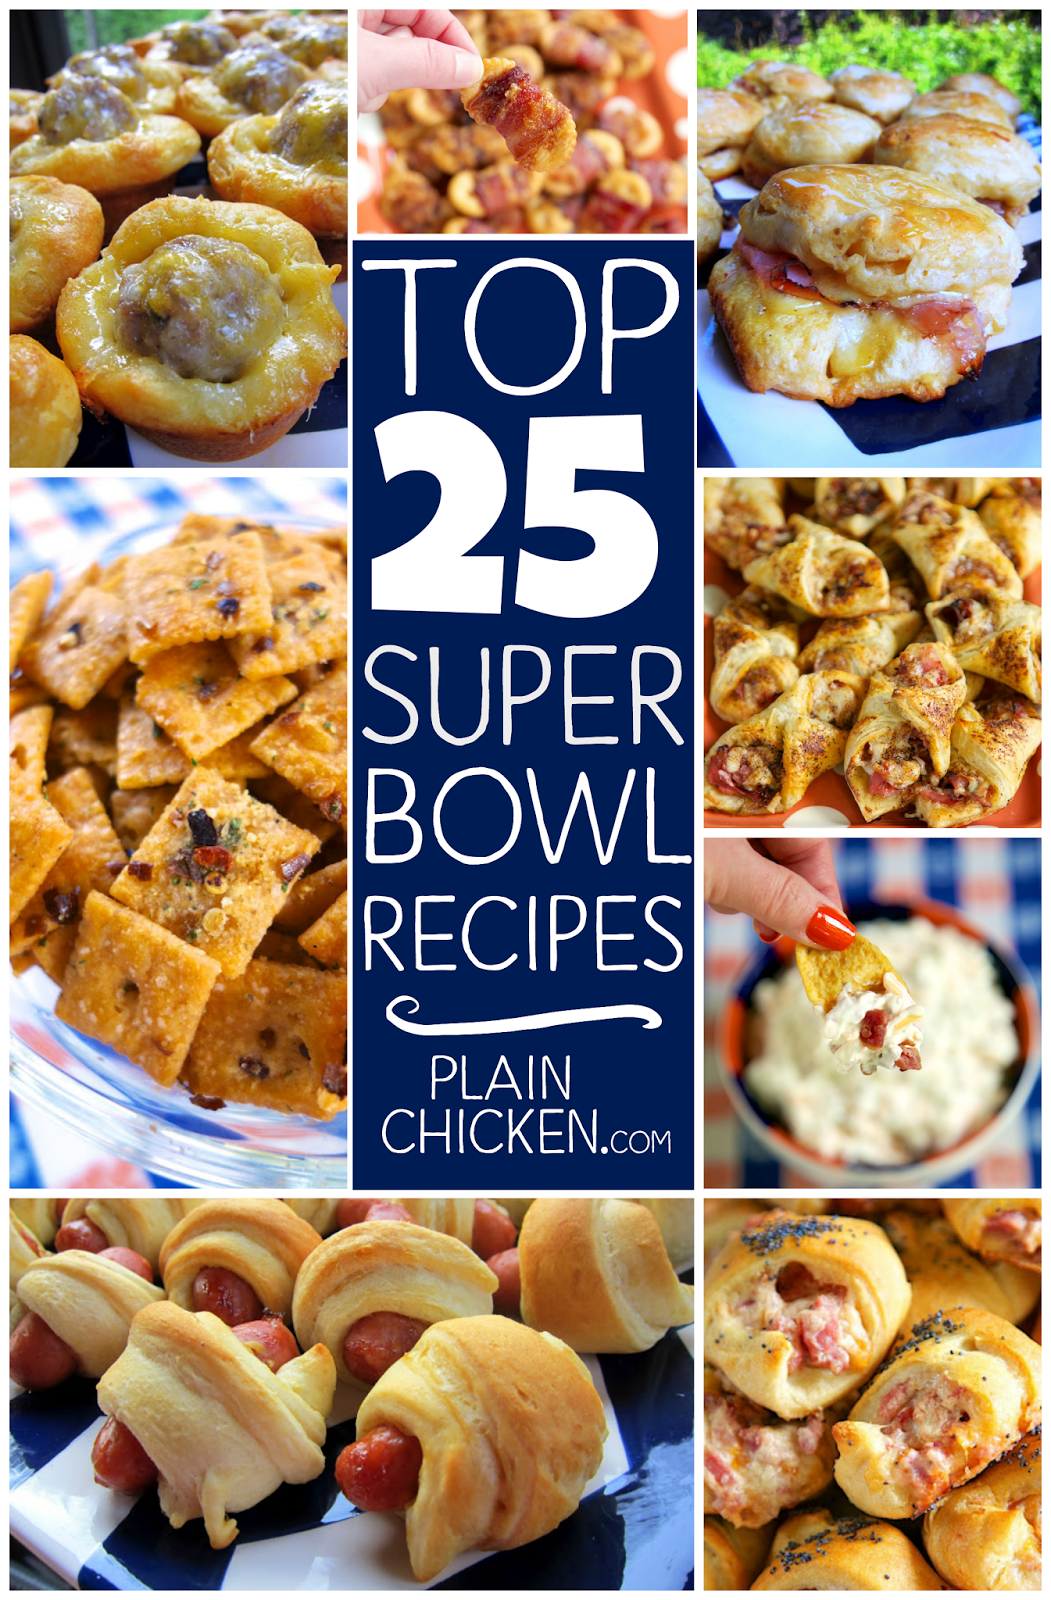 Best 25 French Nail Art Ideas On Pinterest: Top 25 Super Bowl Recipes